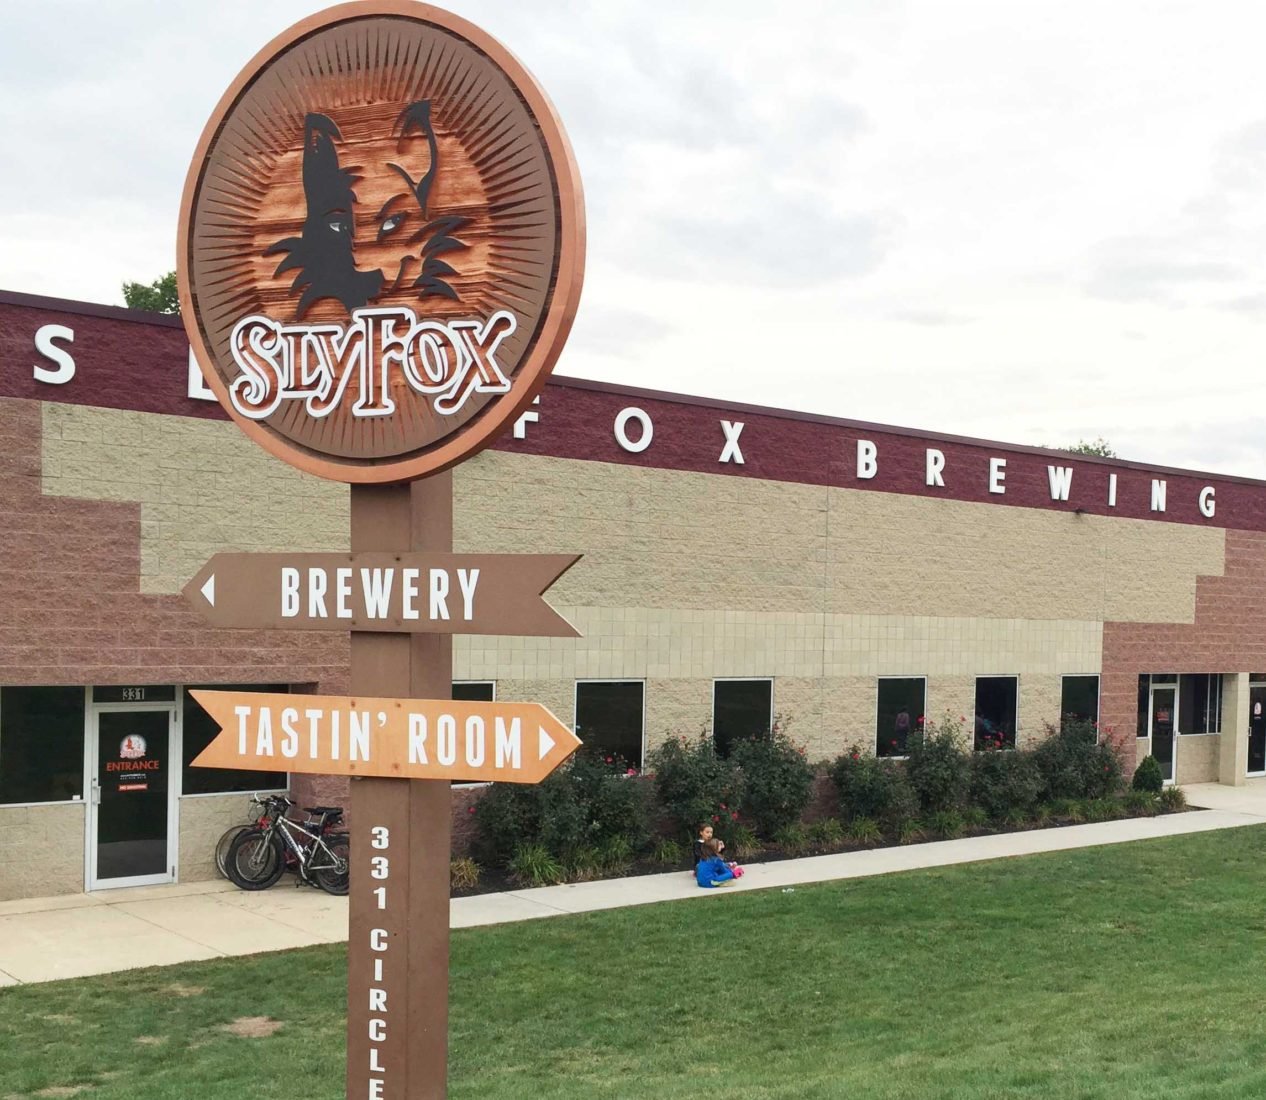 249. Sly Fox Brewery, Pottstown PA, 2015